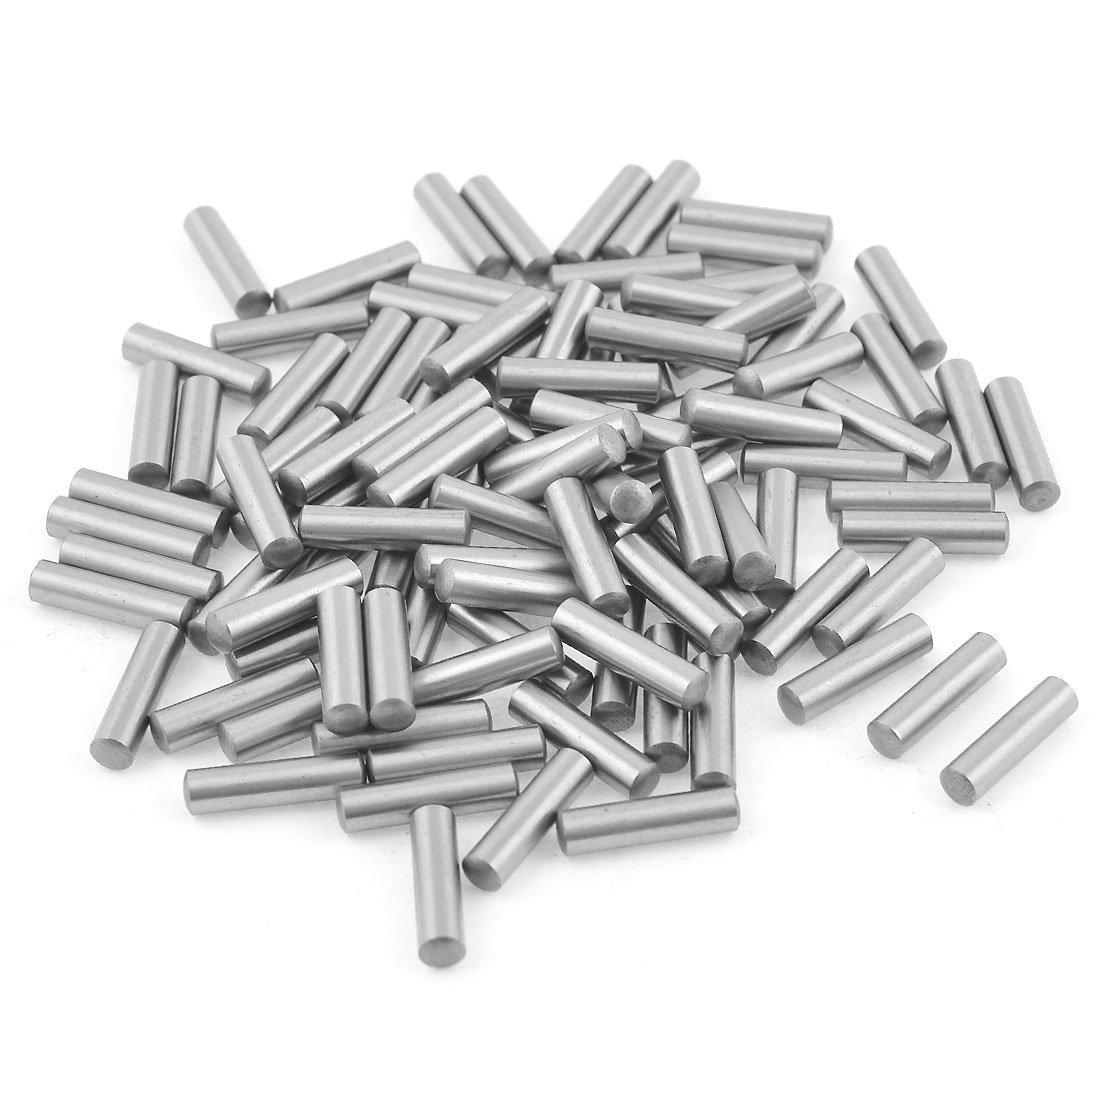 100 Pcs Stainless Steel 3.2mm x 15.8mm Dowel Pins Fasten Elements Sourcingmap a13070200ux1214